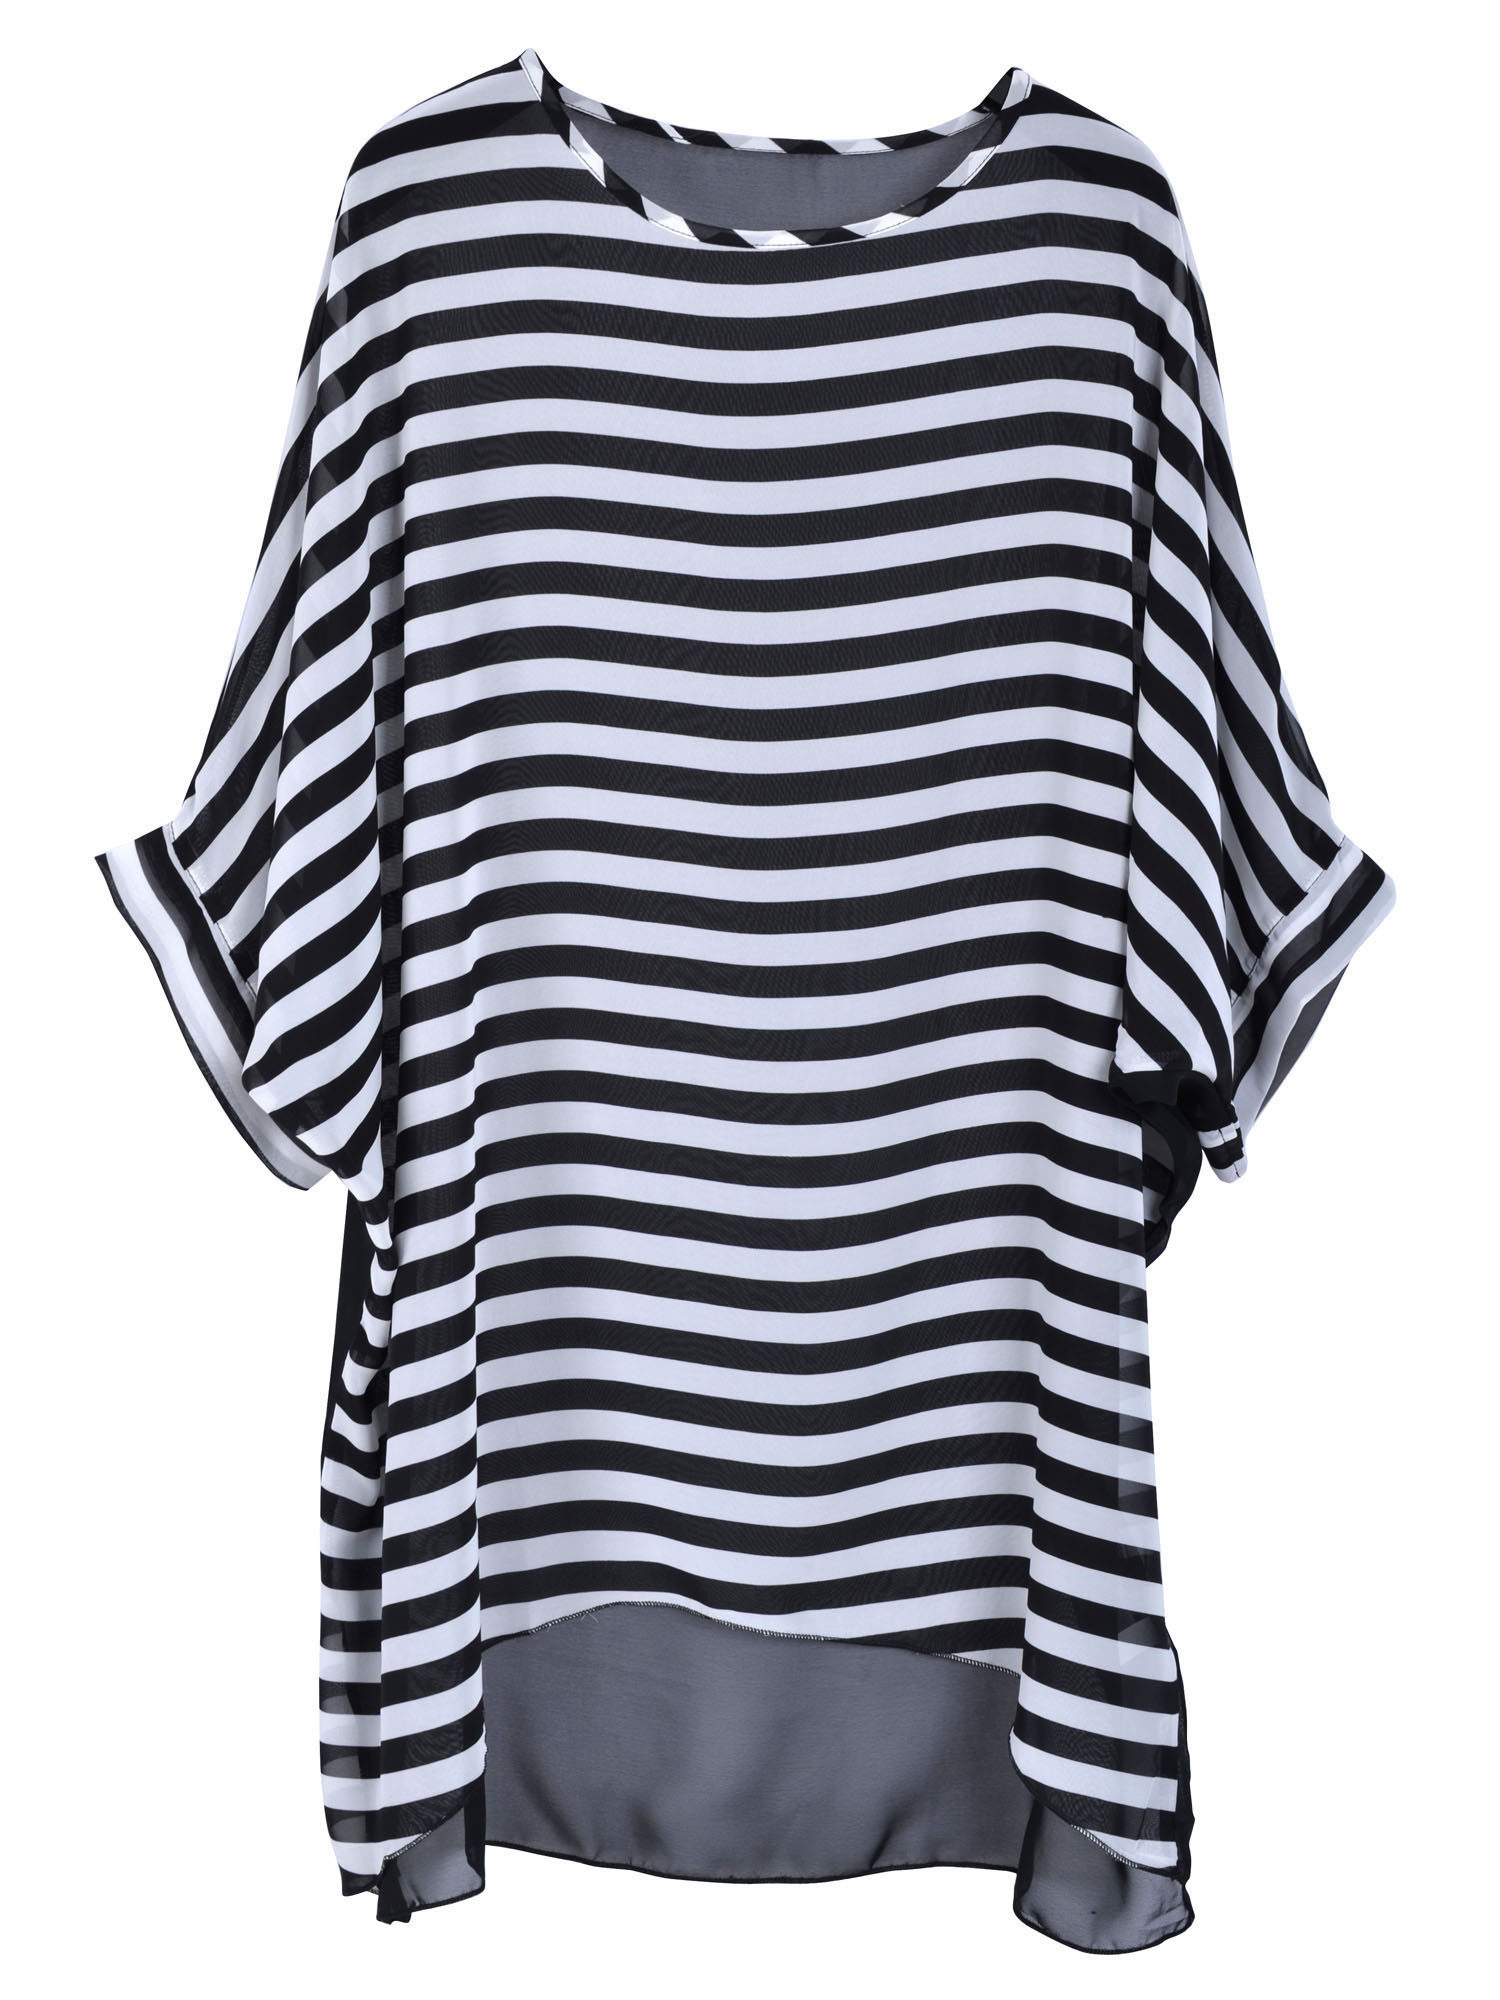 Women's Oversized Stripe Beach Bikini Swimwear Cover-up,Black Stripes